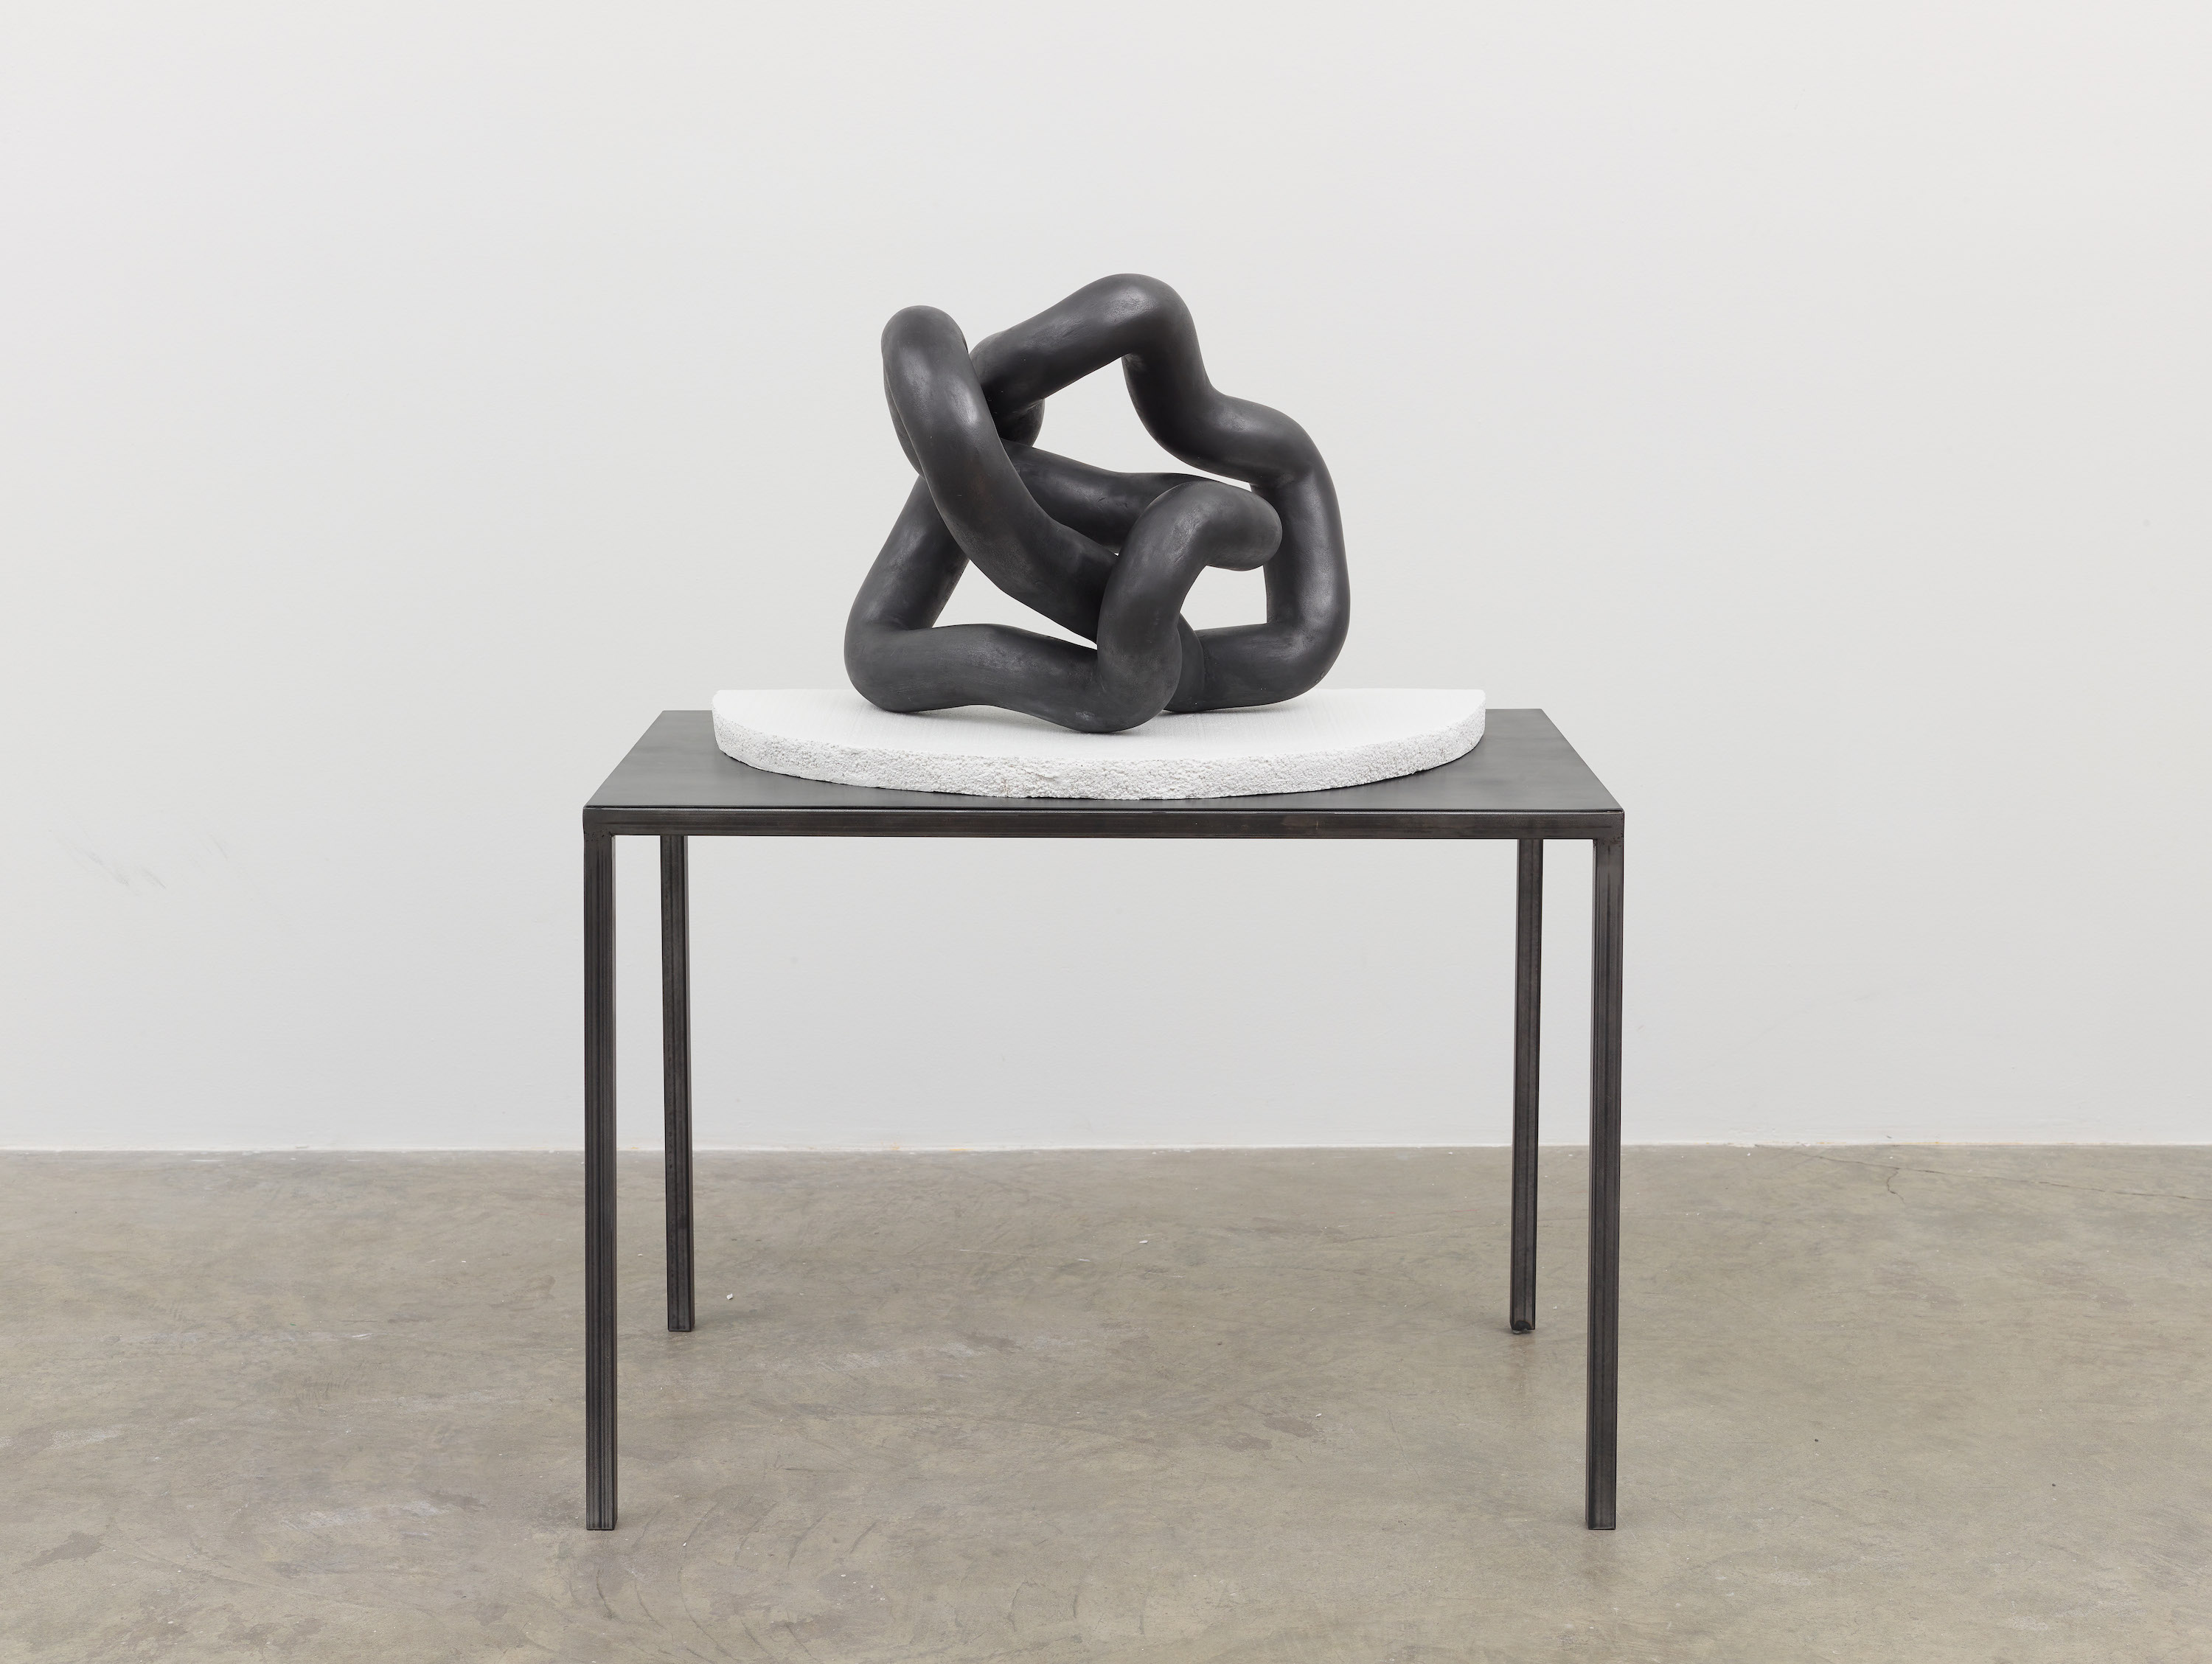 Carolyn Salas, Movement Studies (No. 3), 2015. Cast Hydrocal, graphite powder, sealant on metal base. 46 x 26 x 22.5 inches. Courtesy of Koenig & Clinton.